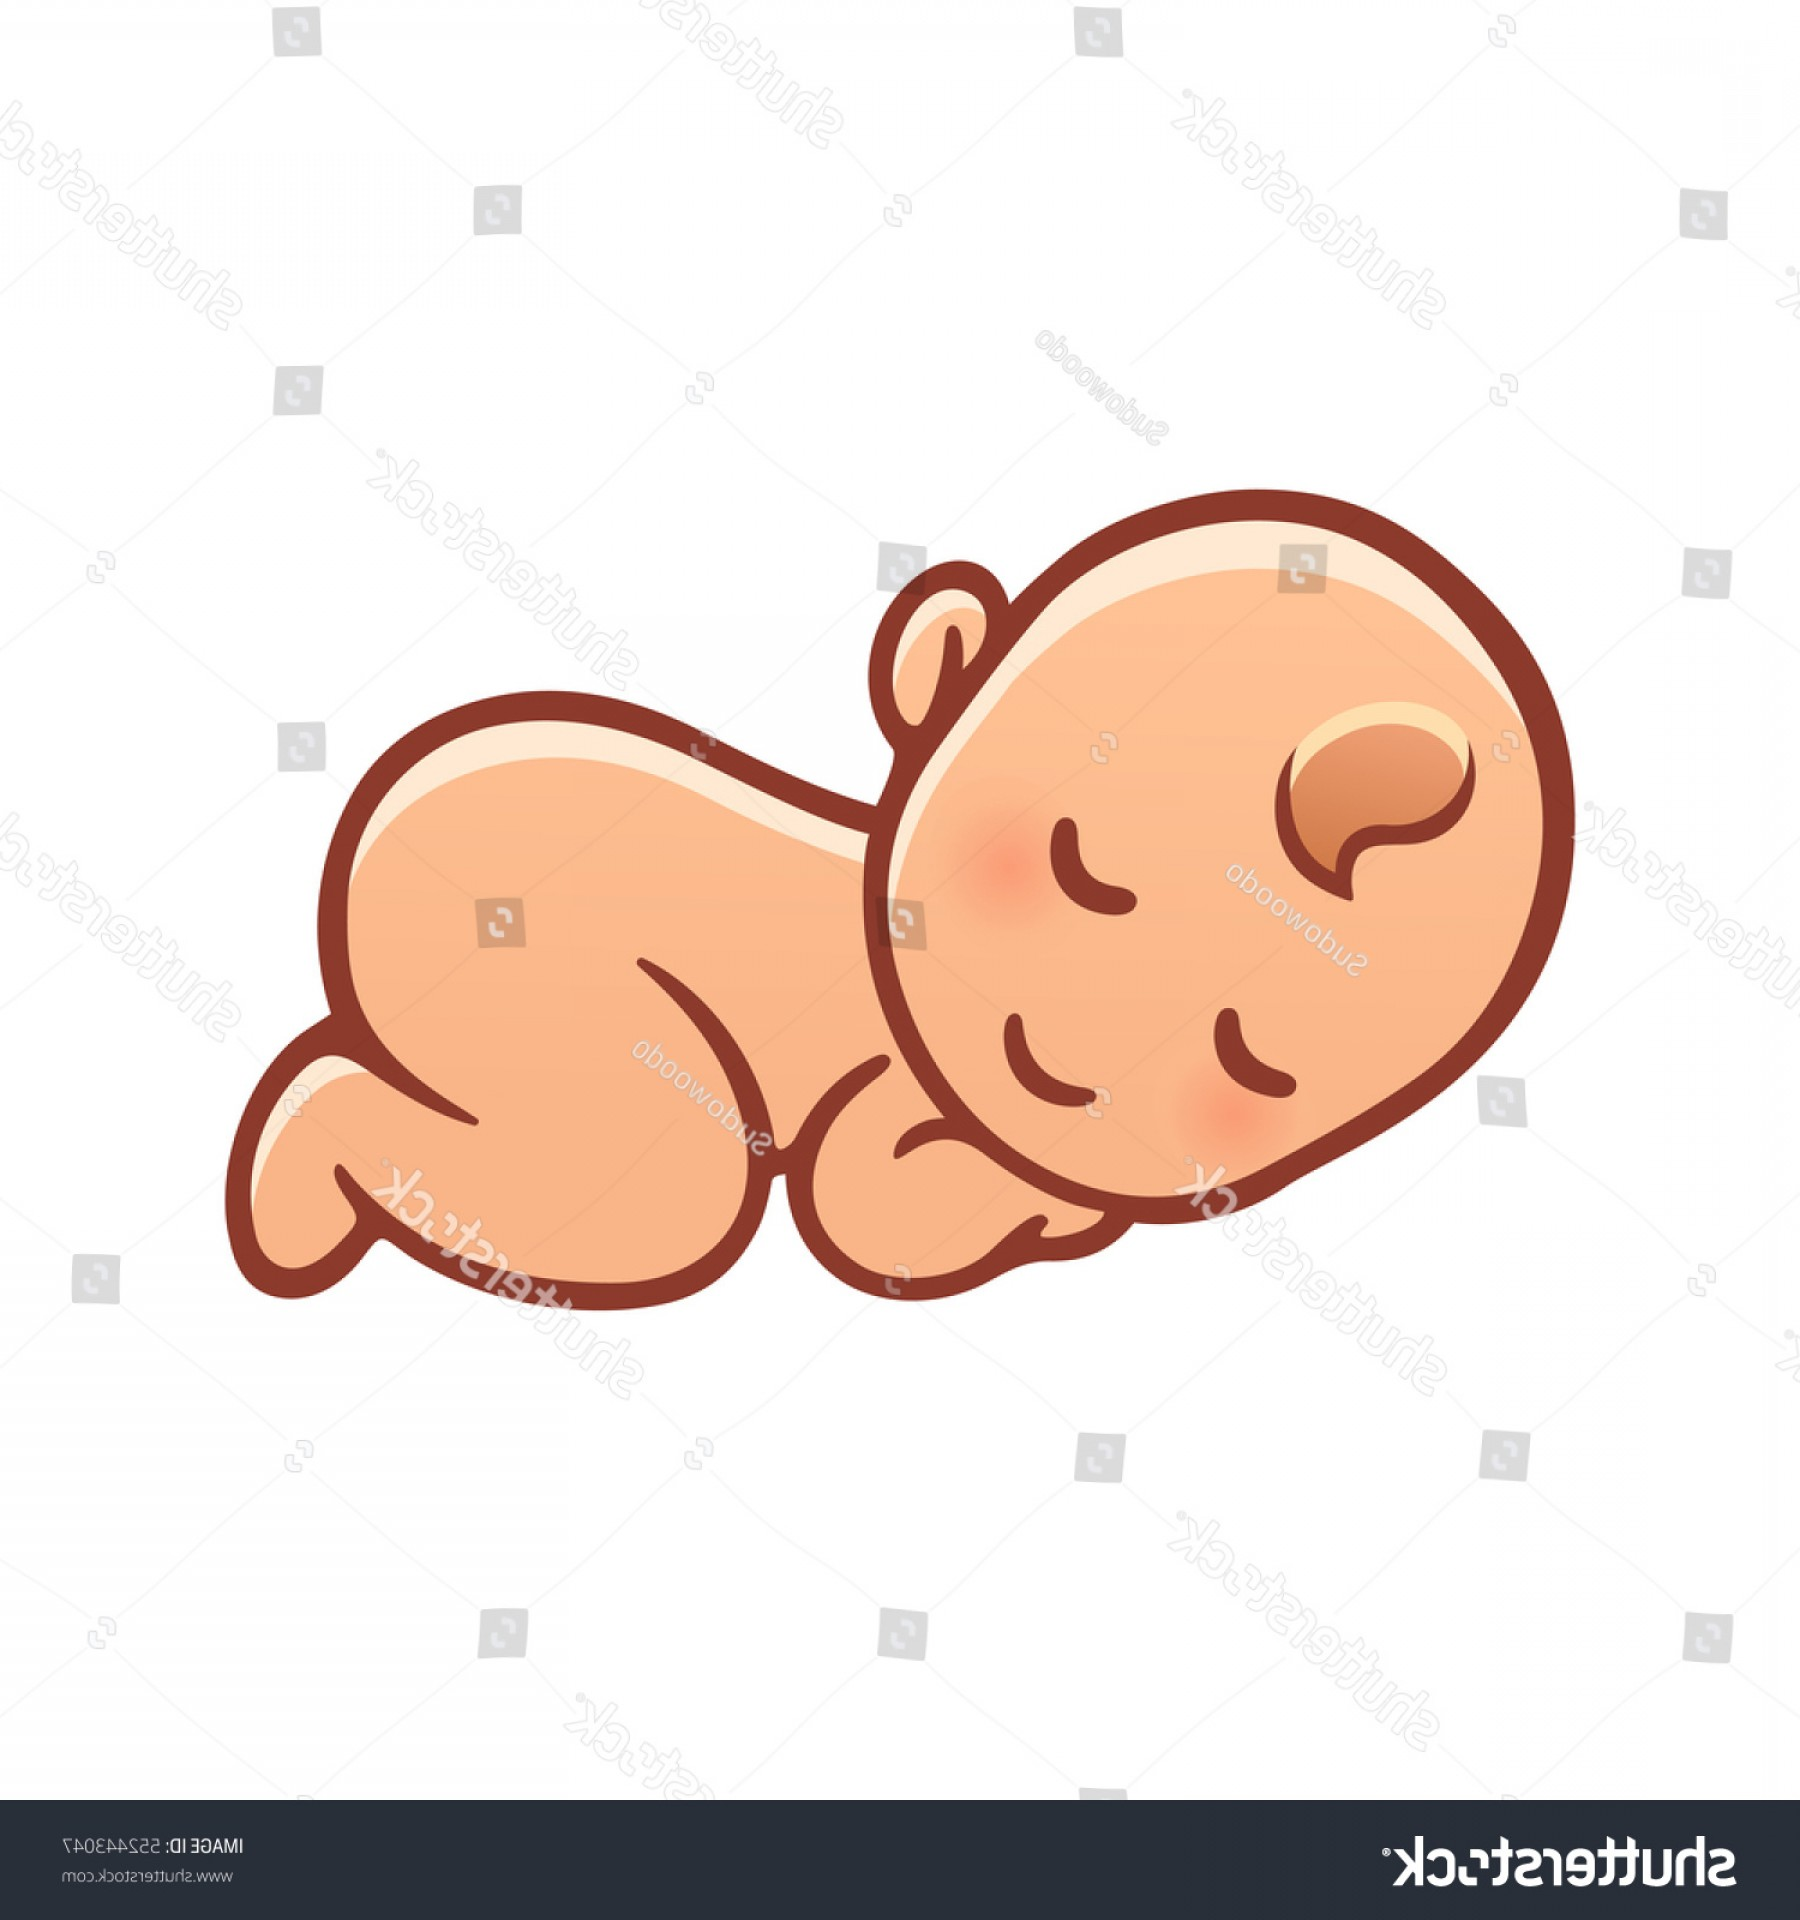 Sleeping Baby Vector: Drawing Cartoon Babies And Cute Sleeping Baby Drawing Simple Cartoon Stock Vector Royalty Free